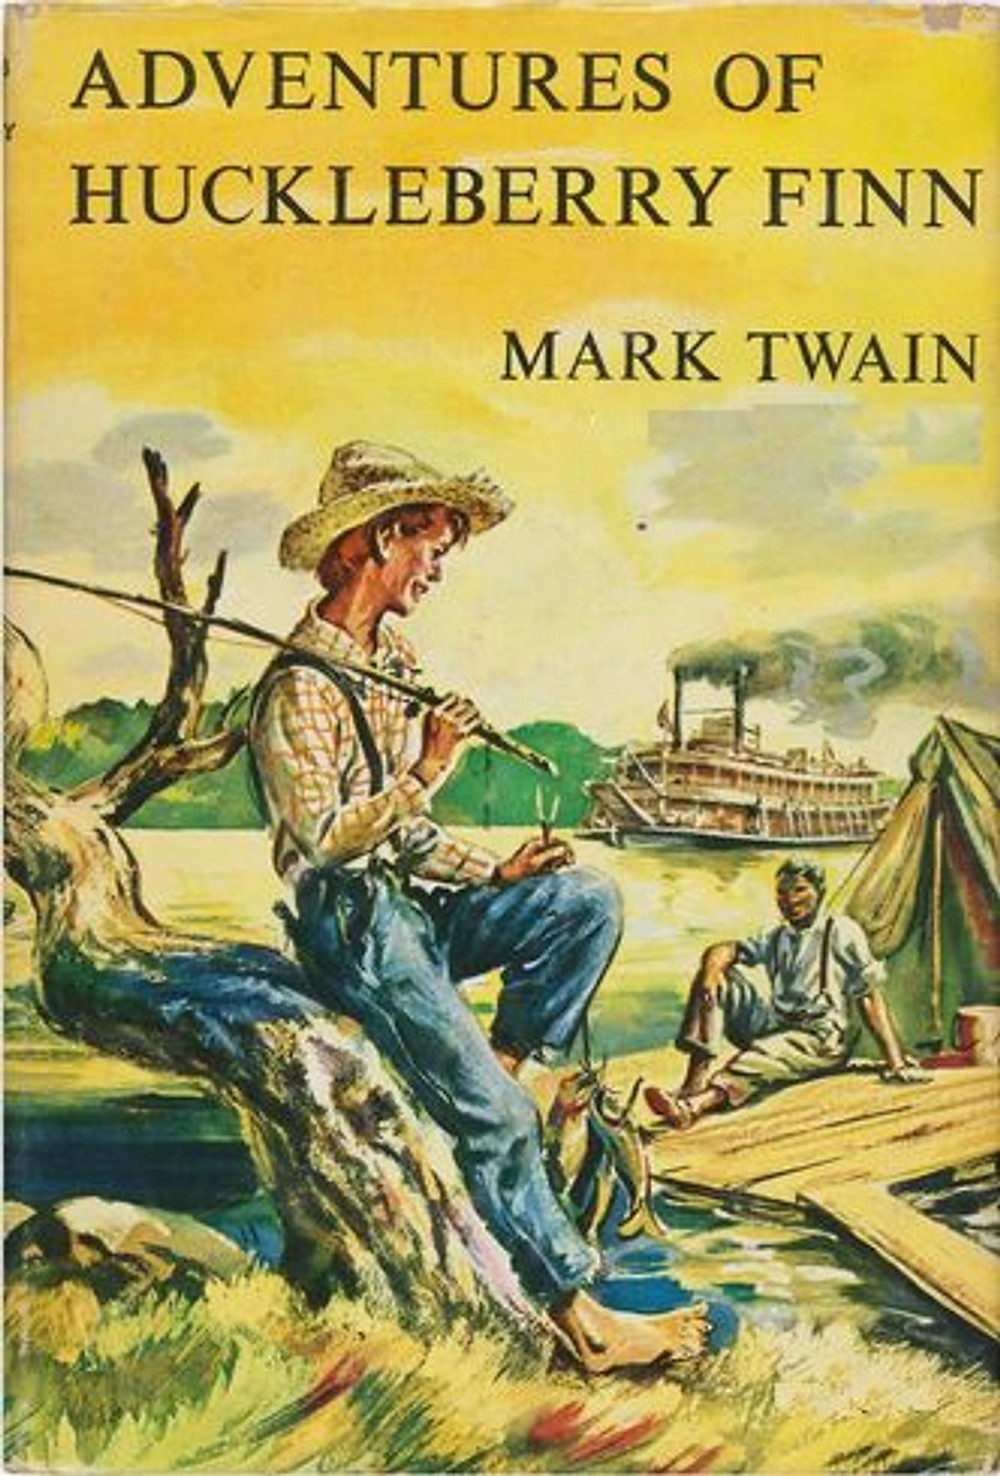 """Book cover of """"Adventures of Huckelberry Finn"""" with an illustration of a youn man leaning against a naked tree by the river."""